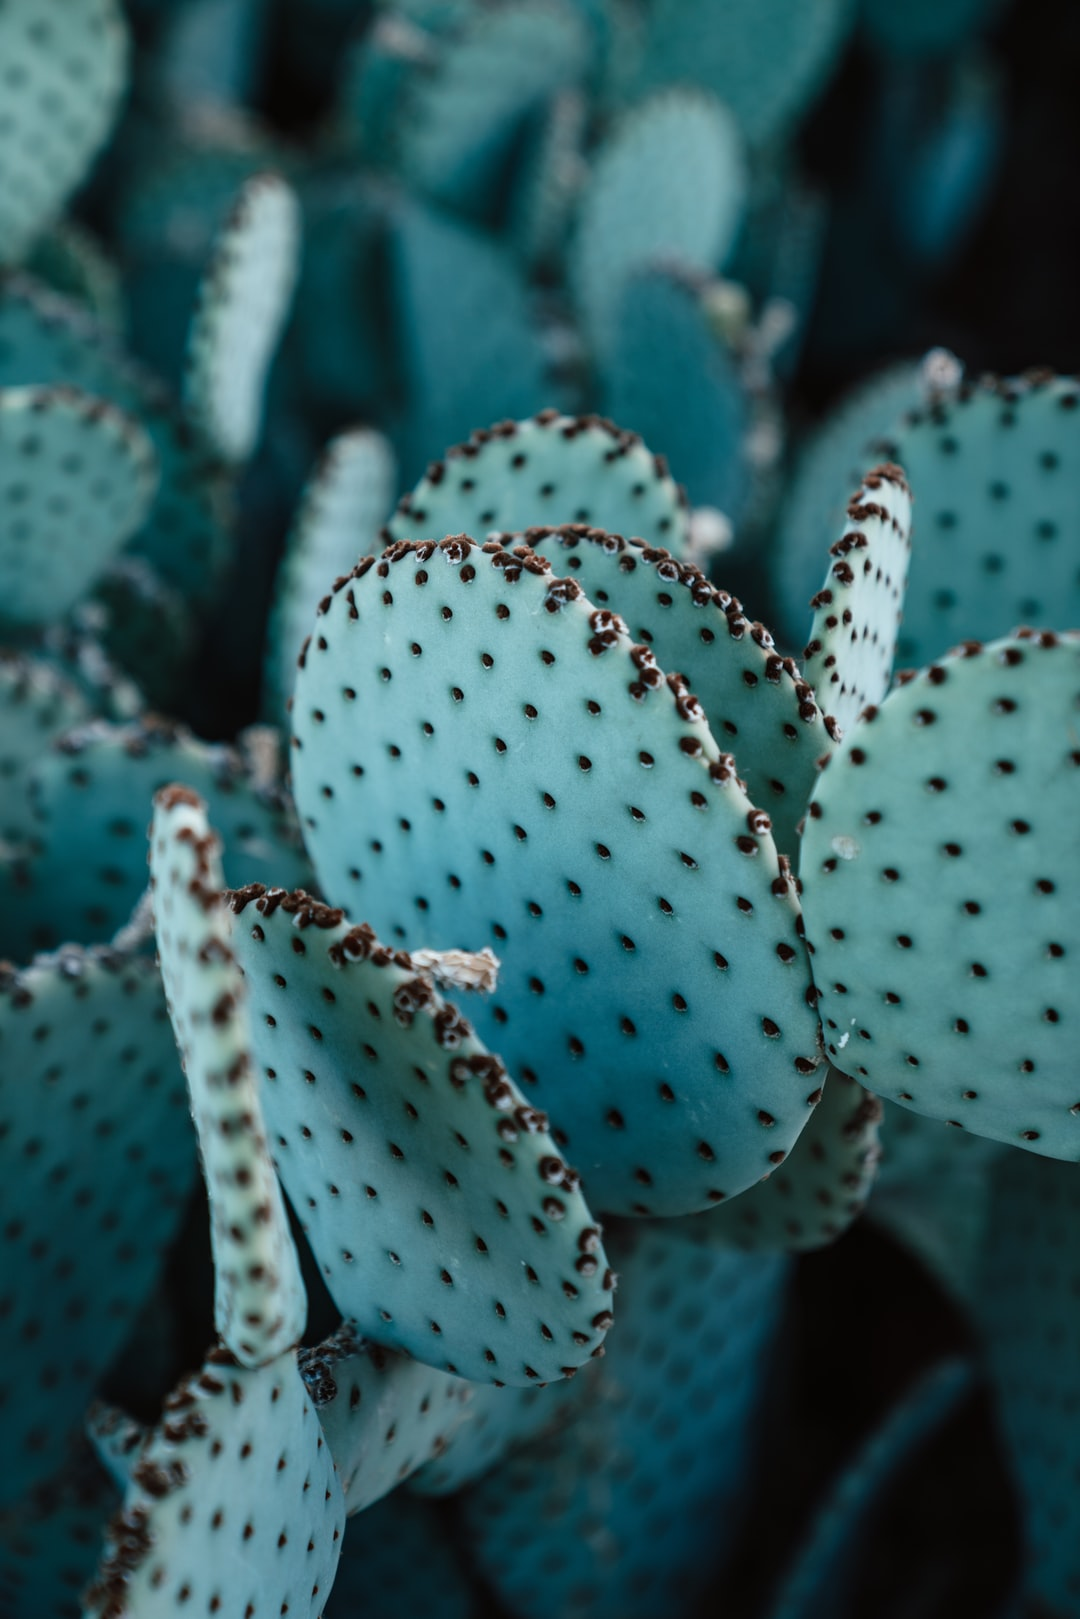 Dotted patterns on the leaves of a teal spineless cactus.